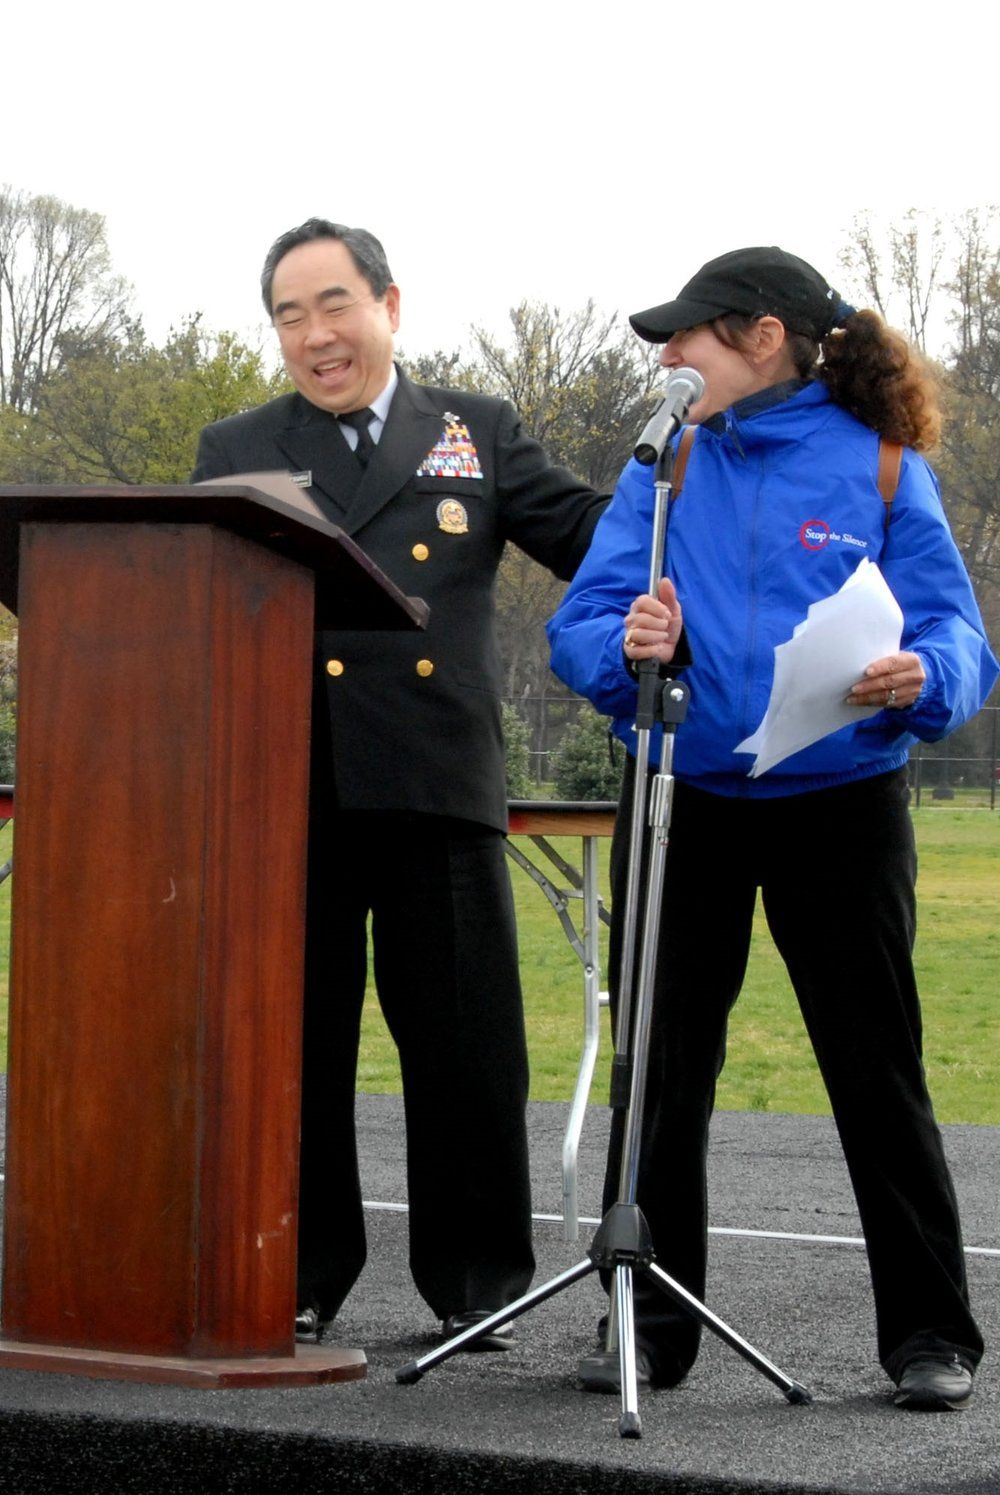 Surgeon General of the United States RADM Kenneth P. Morisugu and Pamela Pine during the 2007 Race to Stop the Silence. (The Race, designed and developed by Pamela, took place for 10 years in the heart of DC from 2004-2013). The Surgeon General's site and various media provided coverage of the event.